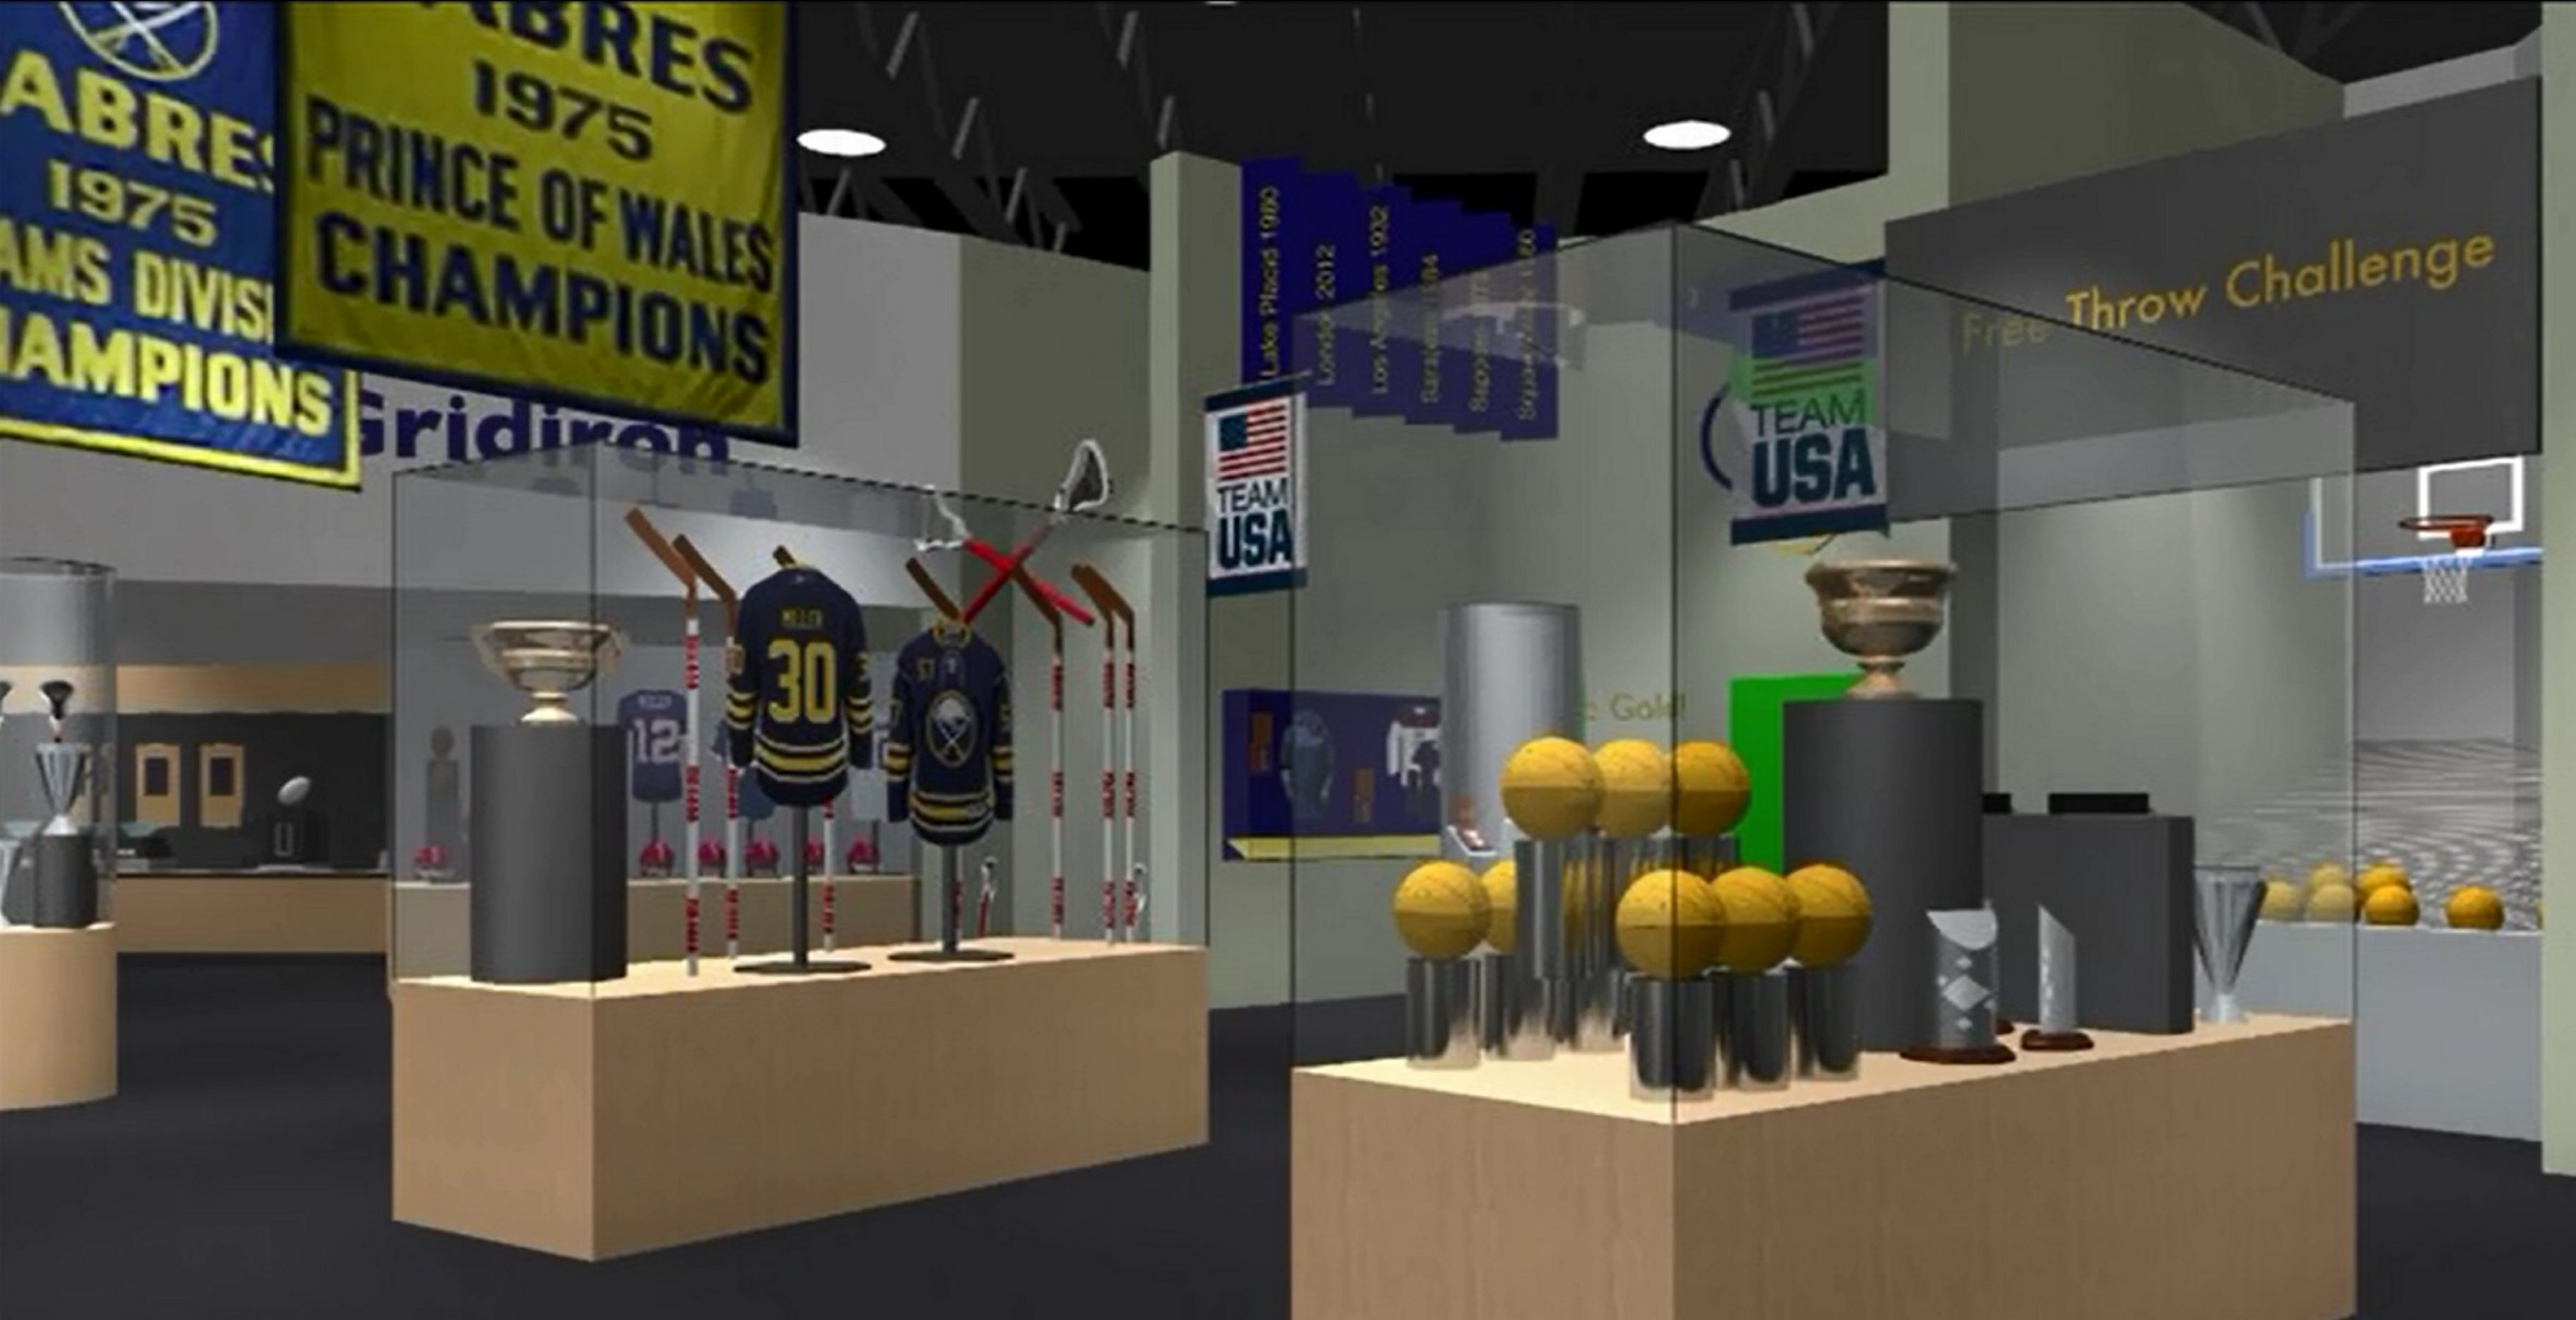 The Buffalo-Niagara Hall of Fame concept includes interactive displays with permanent and temporary exhibits.